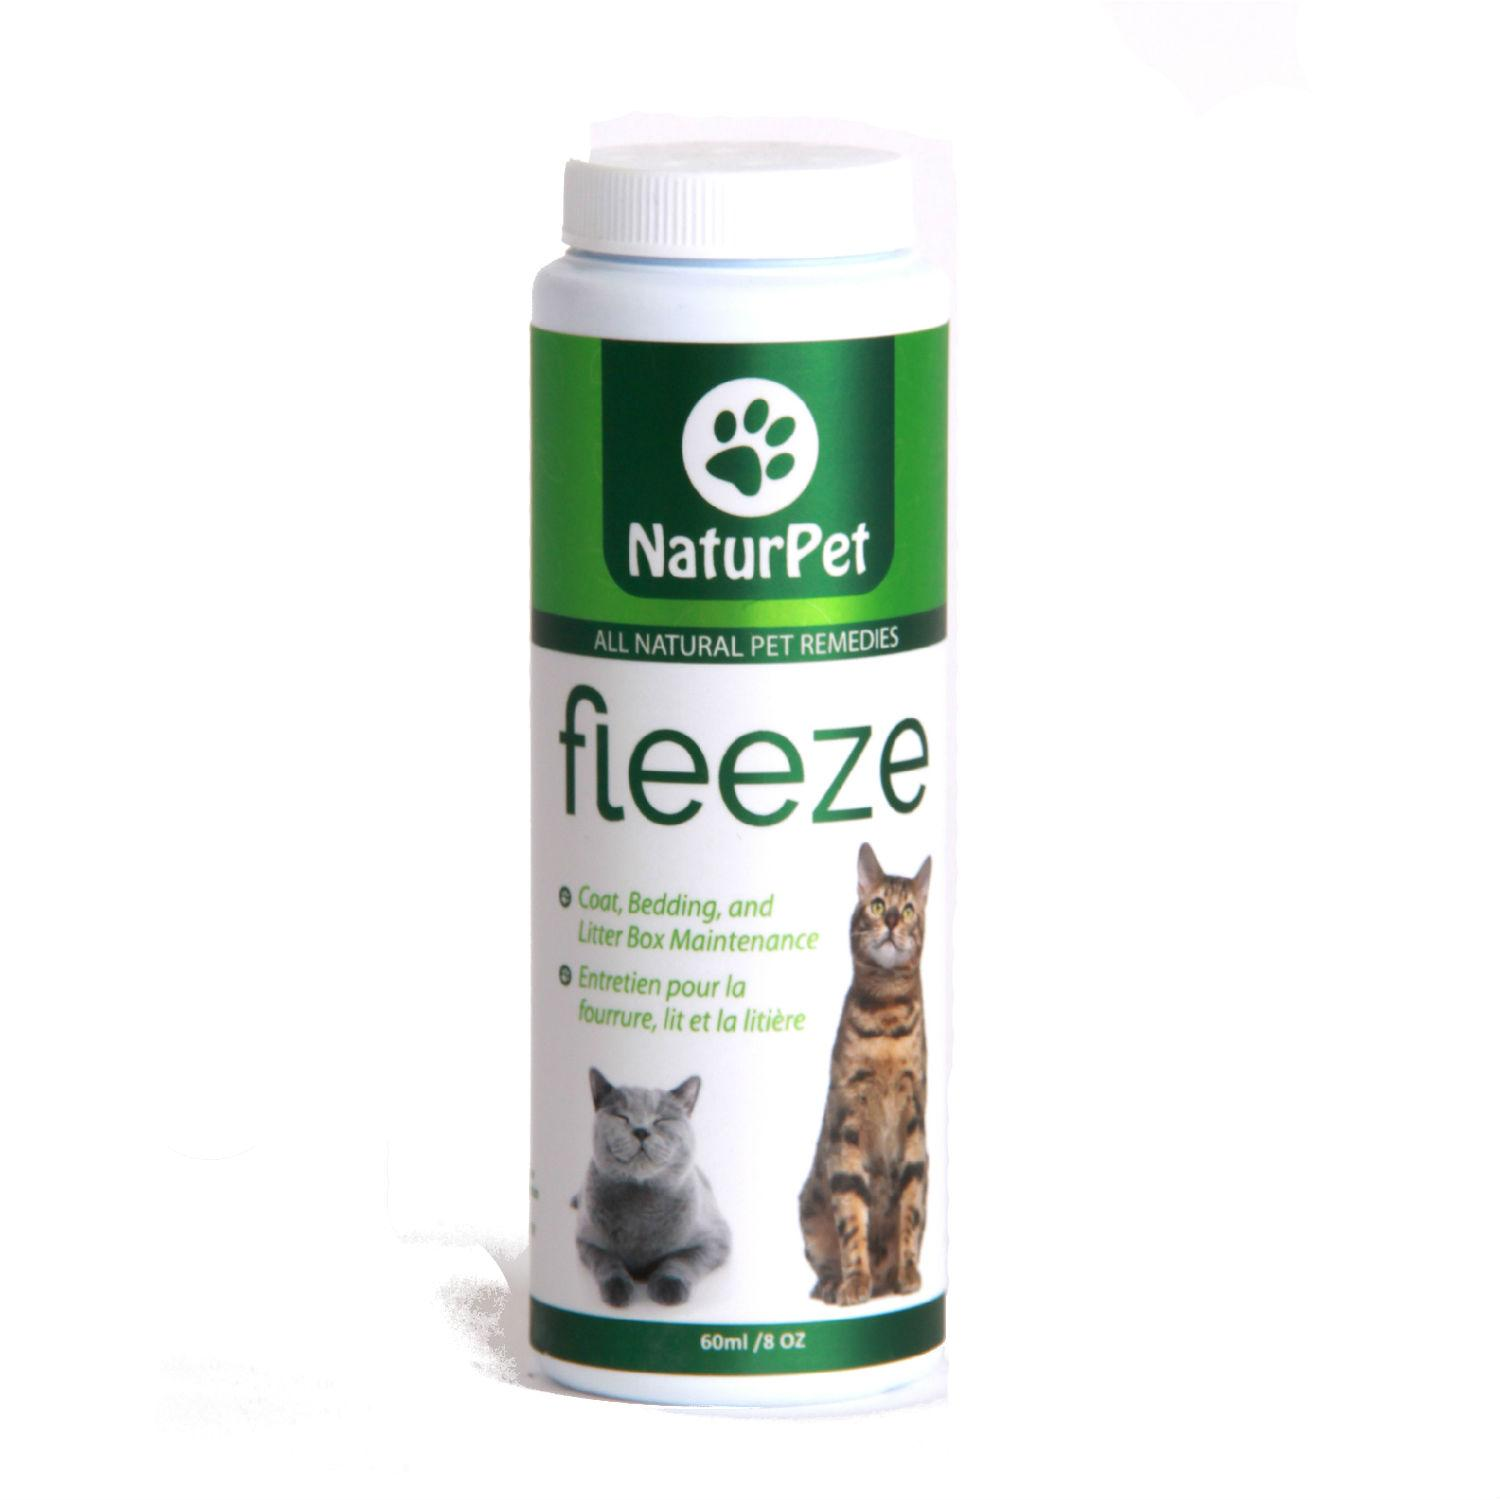 NaturPet Fleeze for Cats